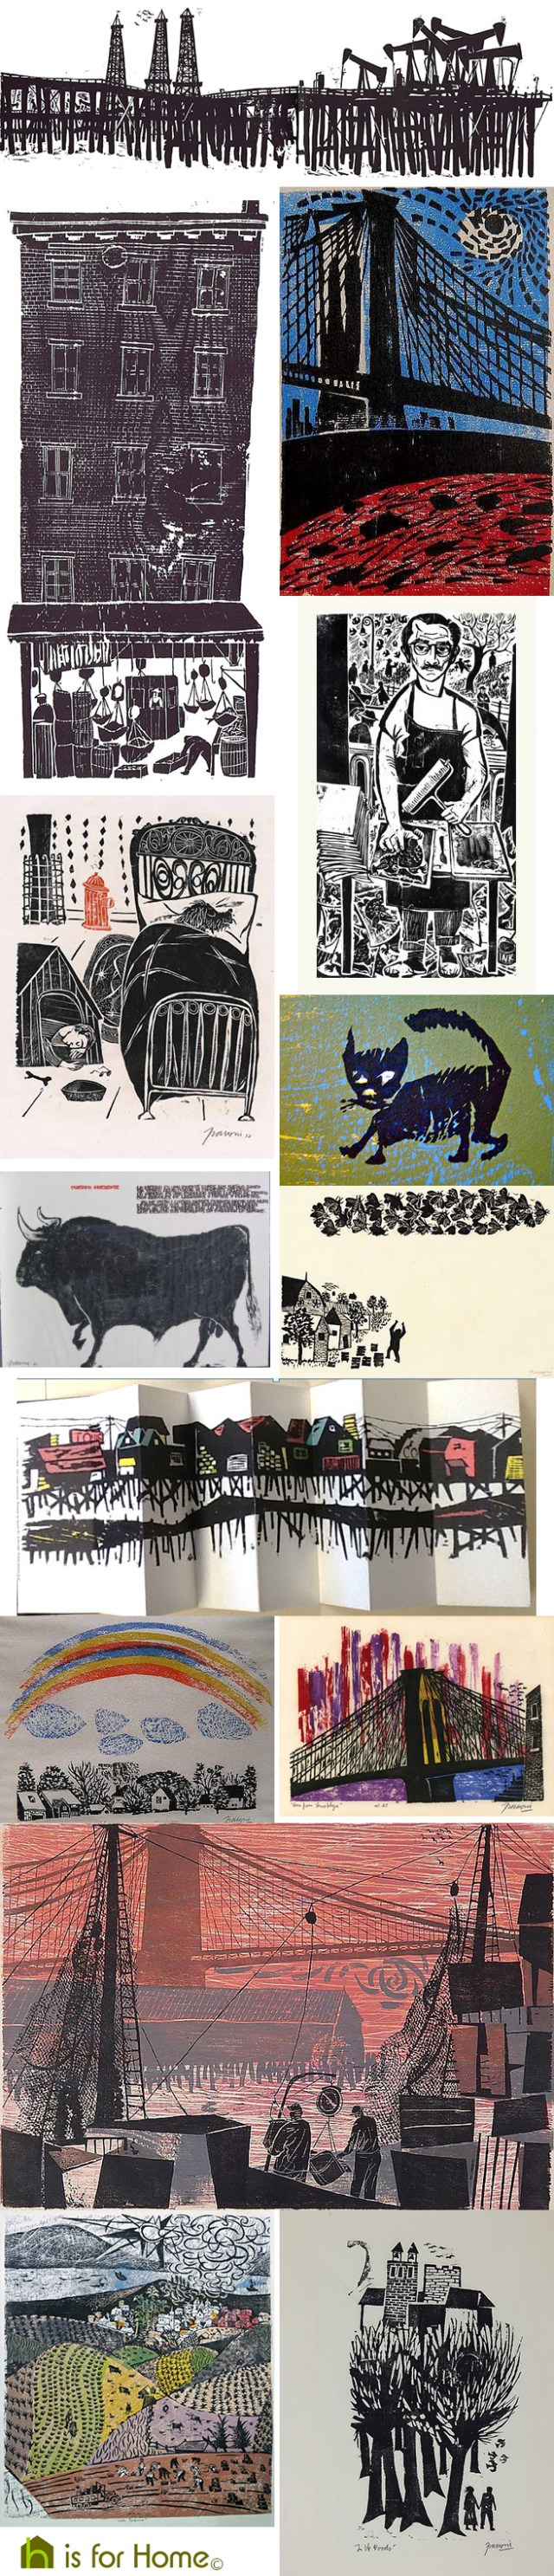 Mosaic of Antonio Frasconi artworks | H is for Home